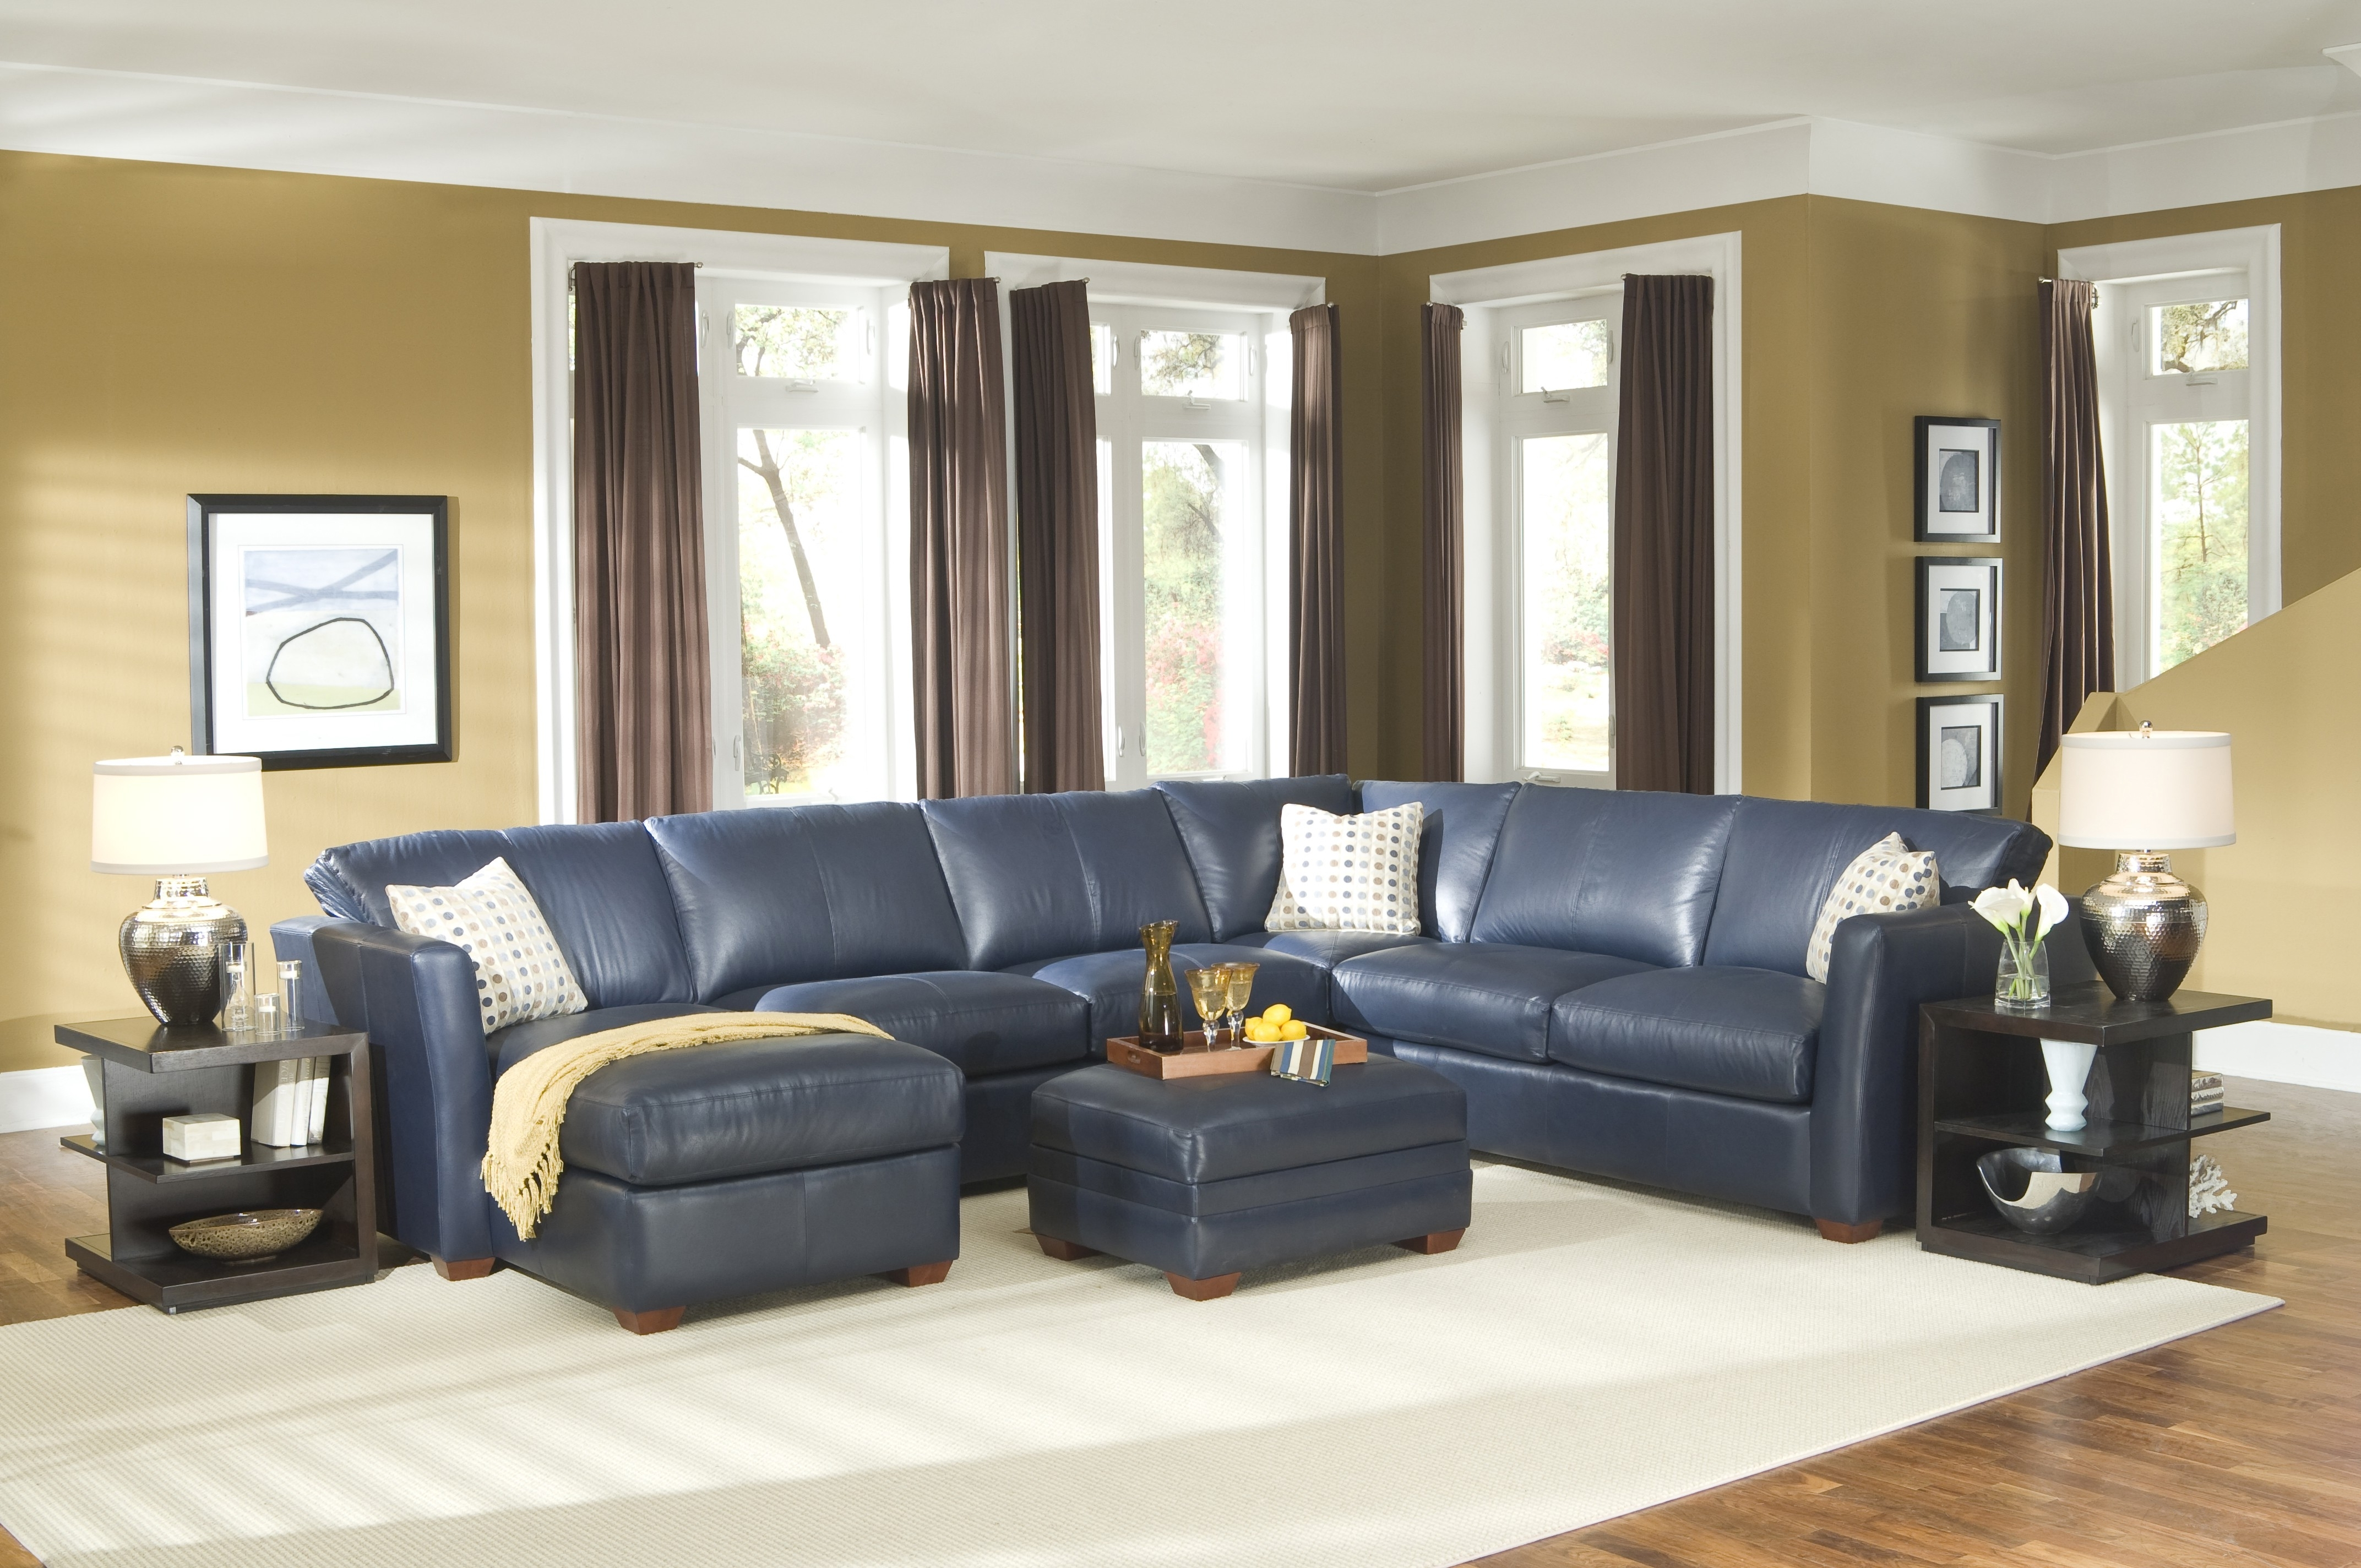 Blue Leather Sectional Sofa And White Cushions Addedsquare In Favorite Black Leather Sectionals With Ottoman (View 7 of 20)